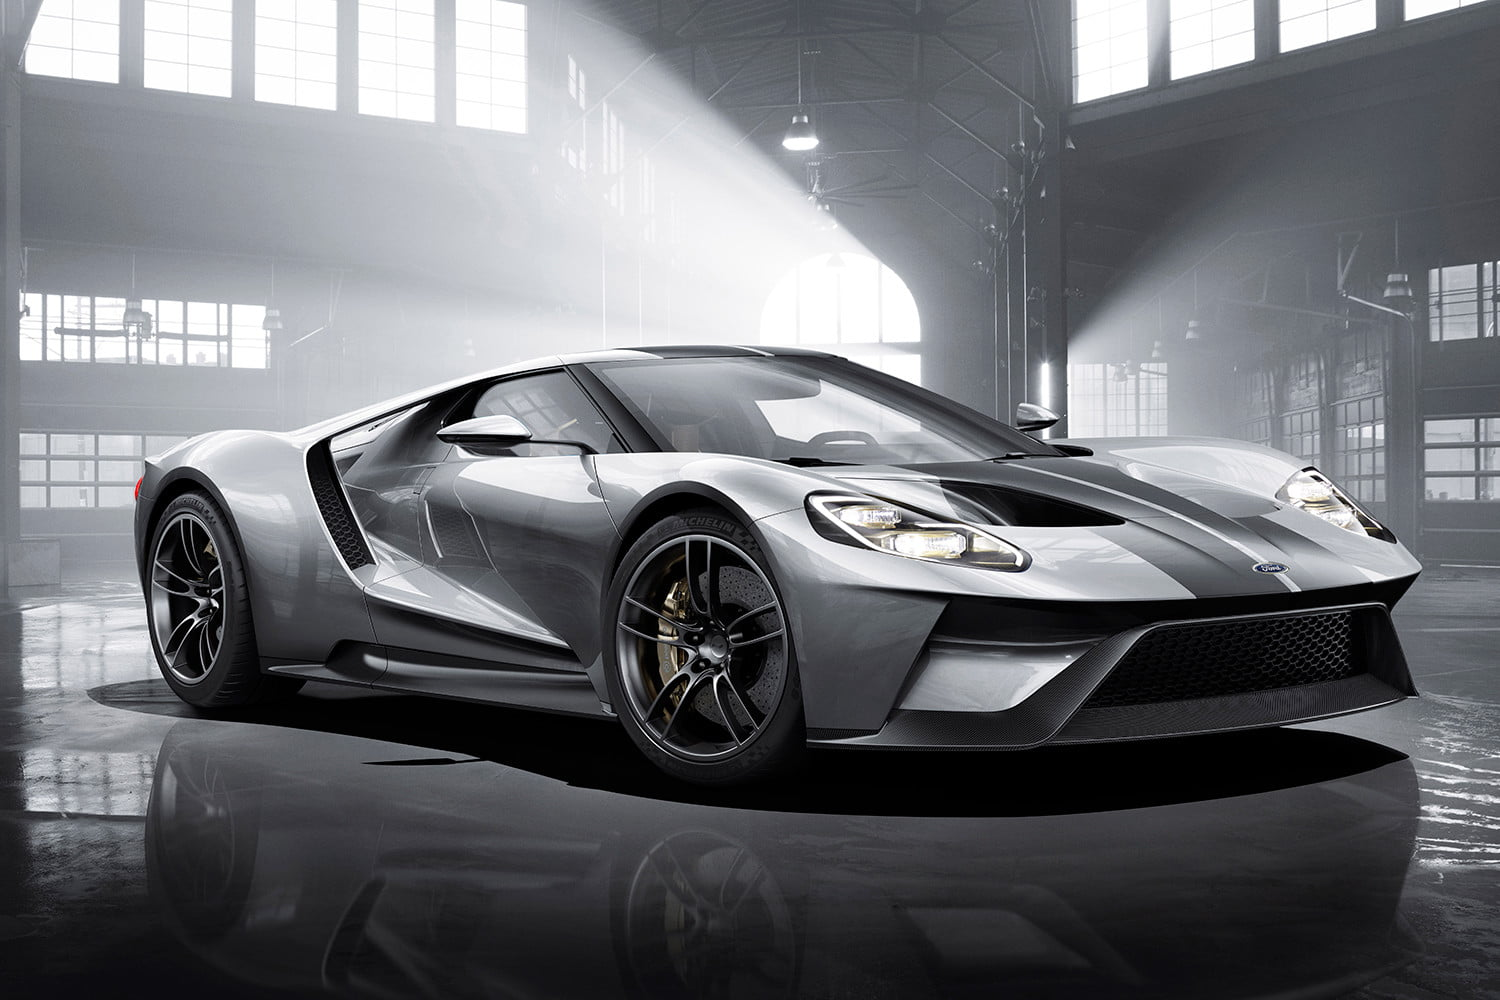 Ford Gt Application Process Will Be Lengthy Report Says Digital Trends